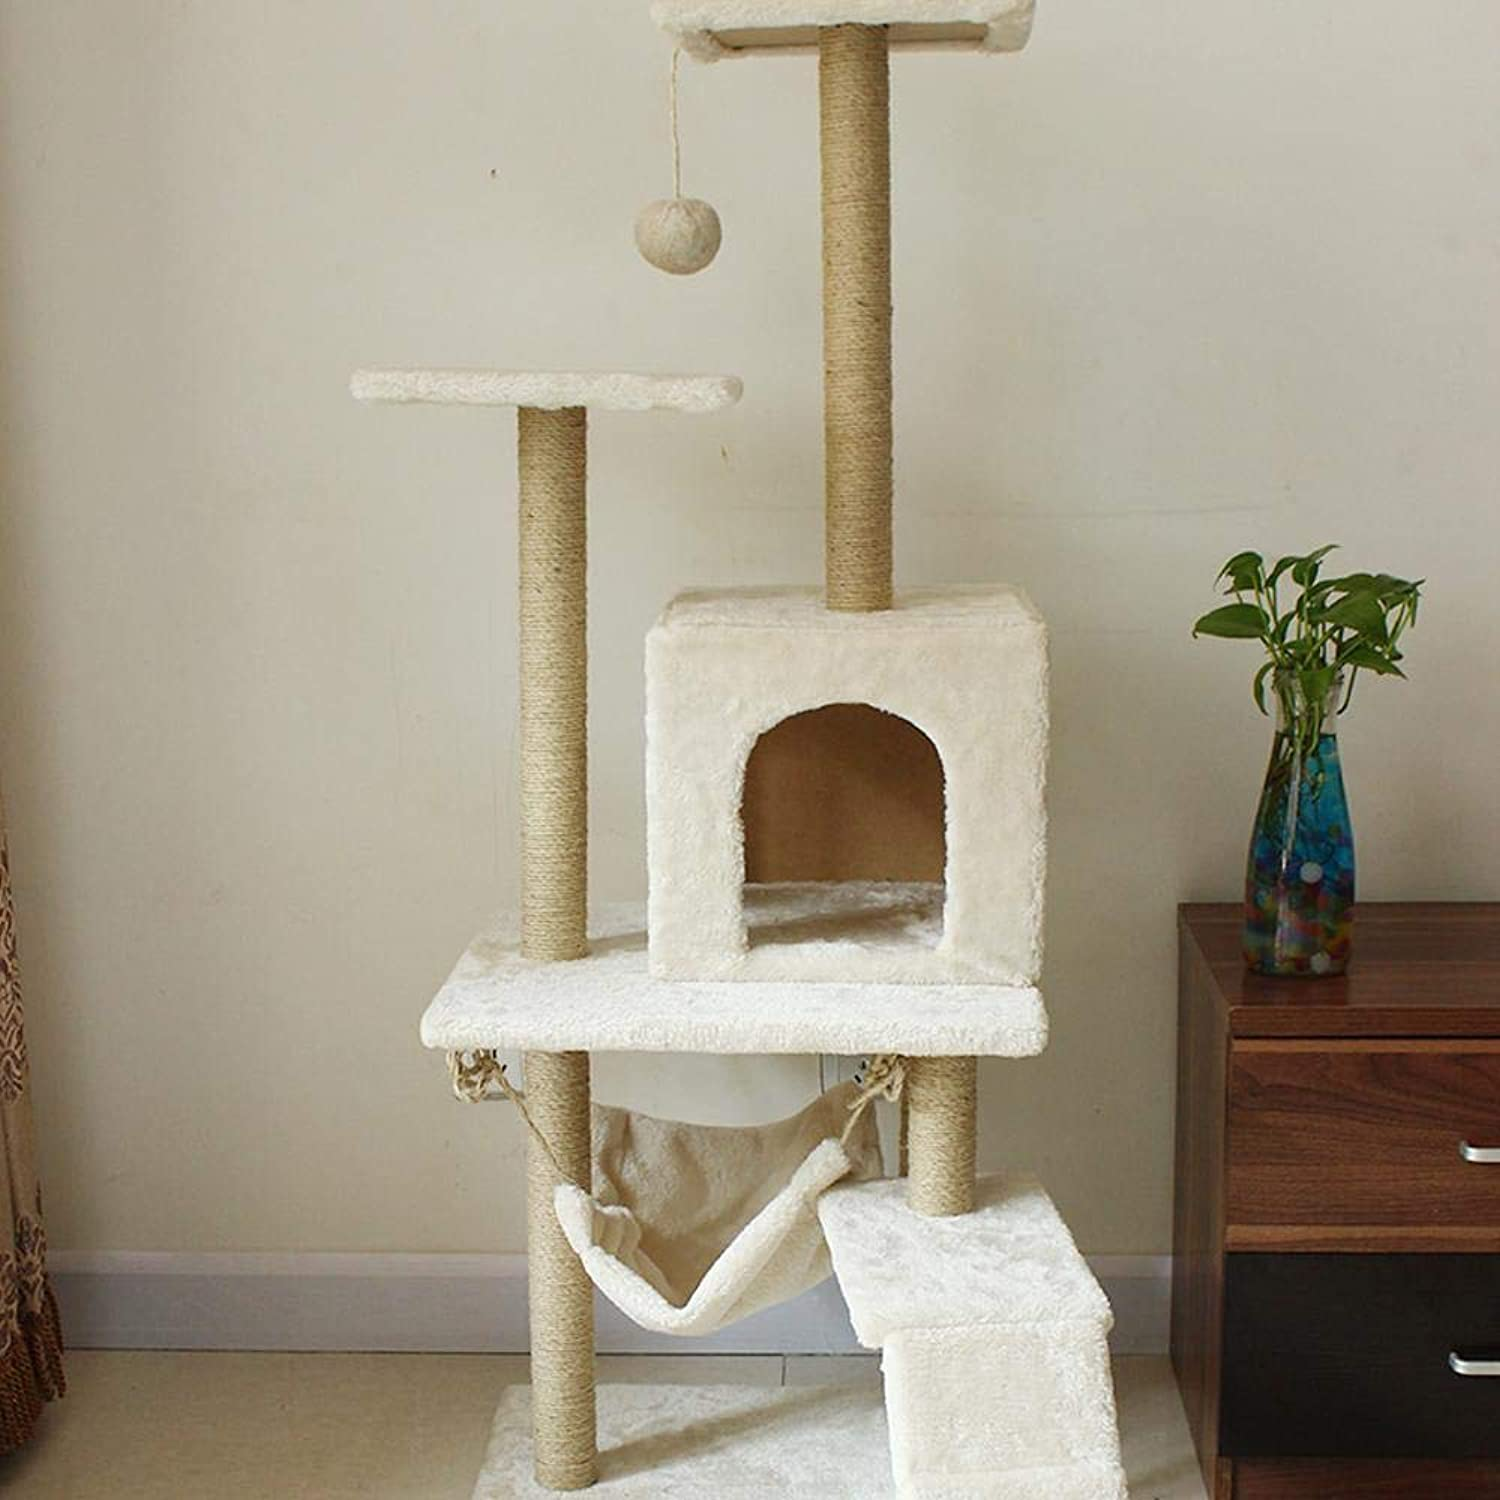 Axiba Play Towers Trees for Cats Cat climbing Frame Cat Tree Cat Scratch Board cat Litter Cat Supplies cat toy cat Platform Pet Grinding Claw 130cm 52cm